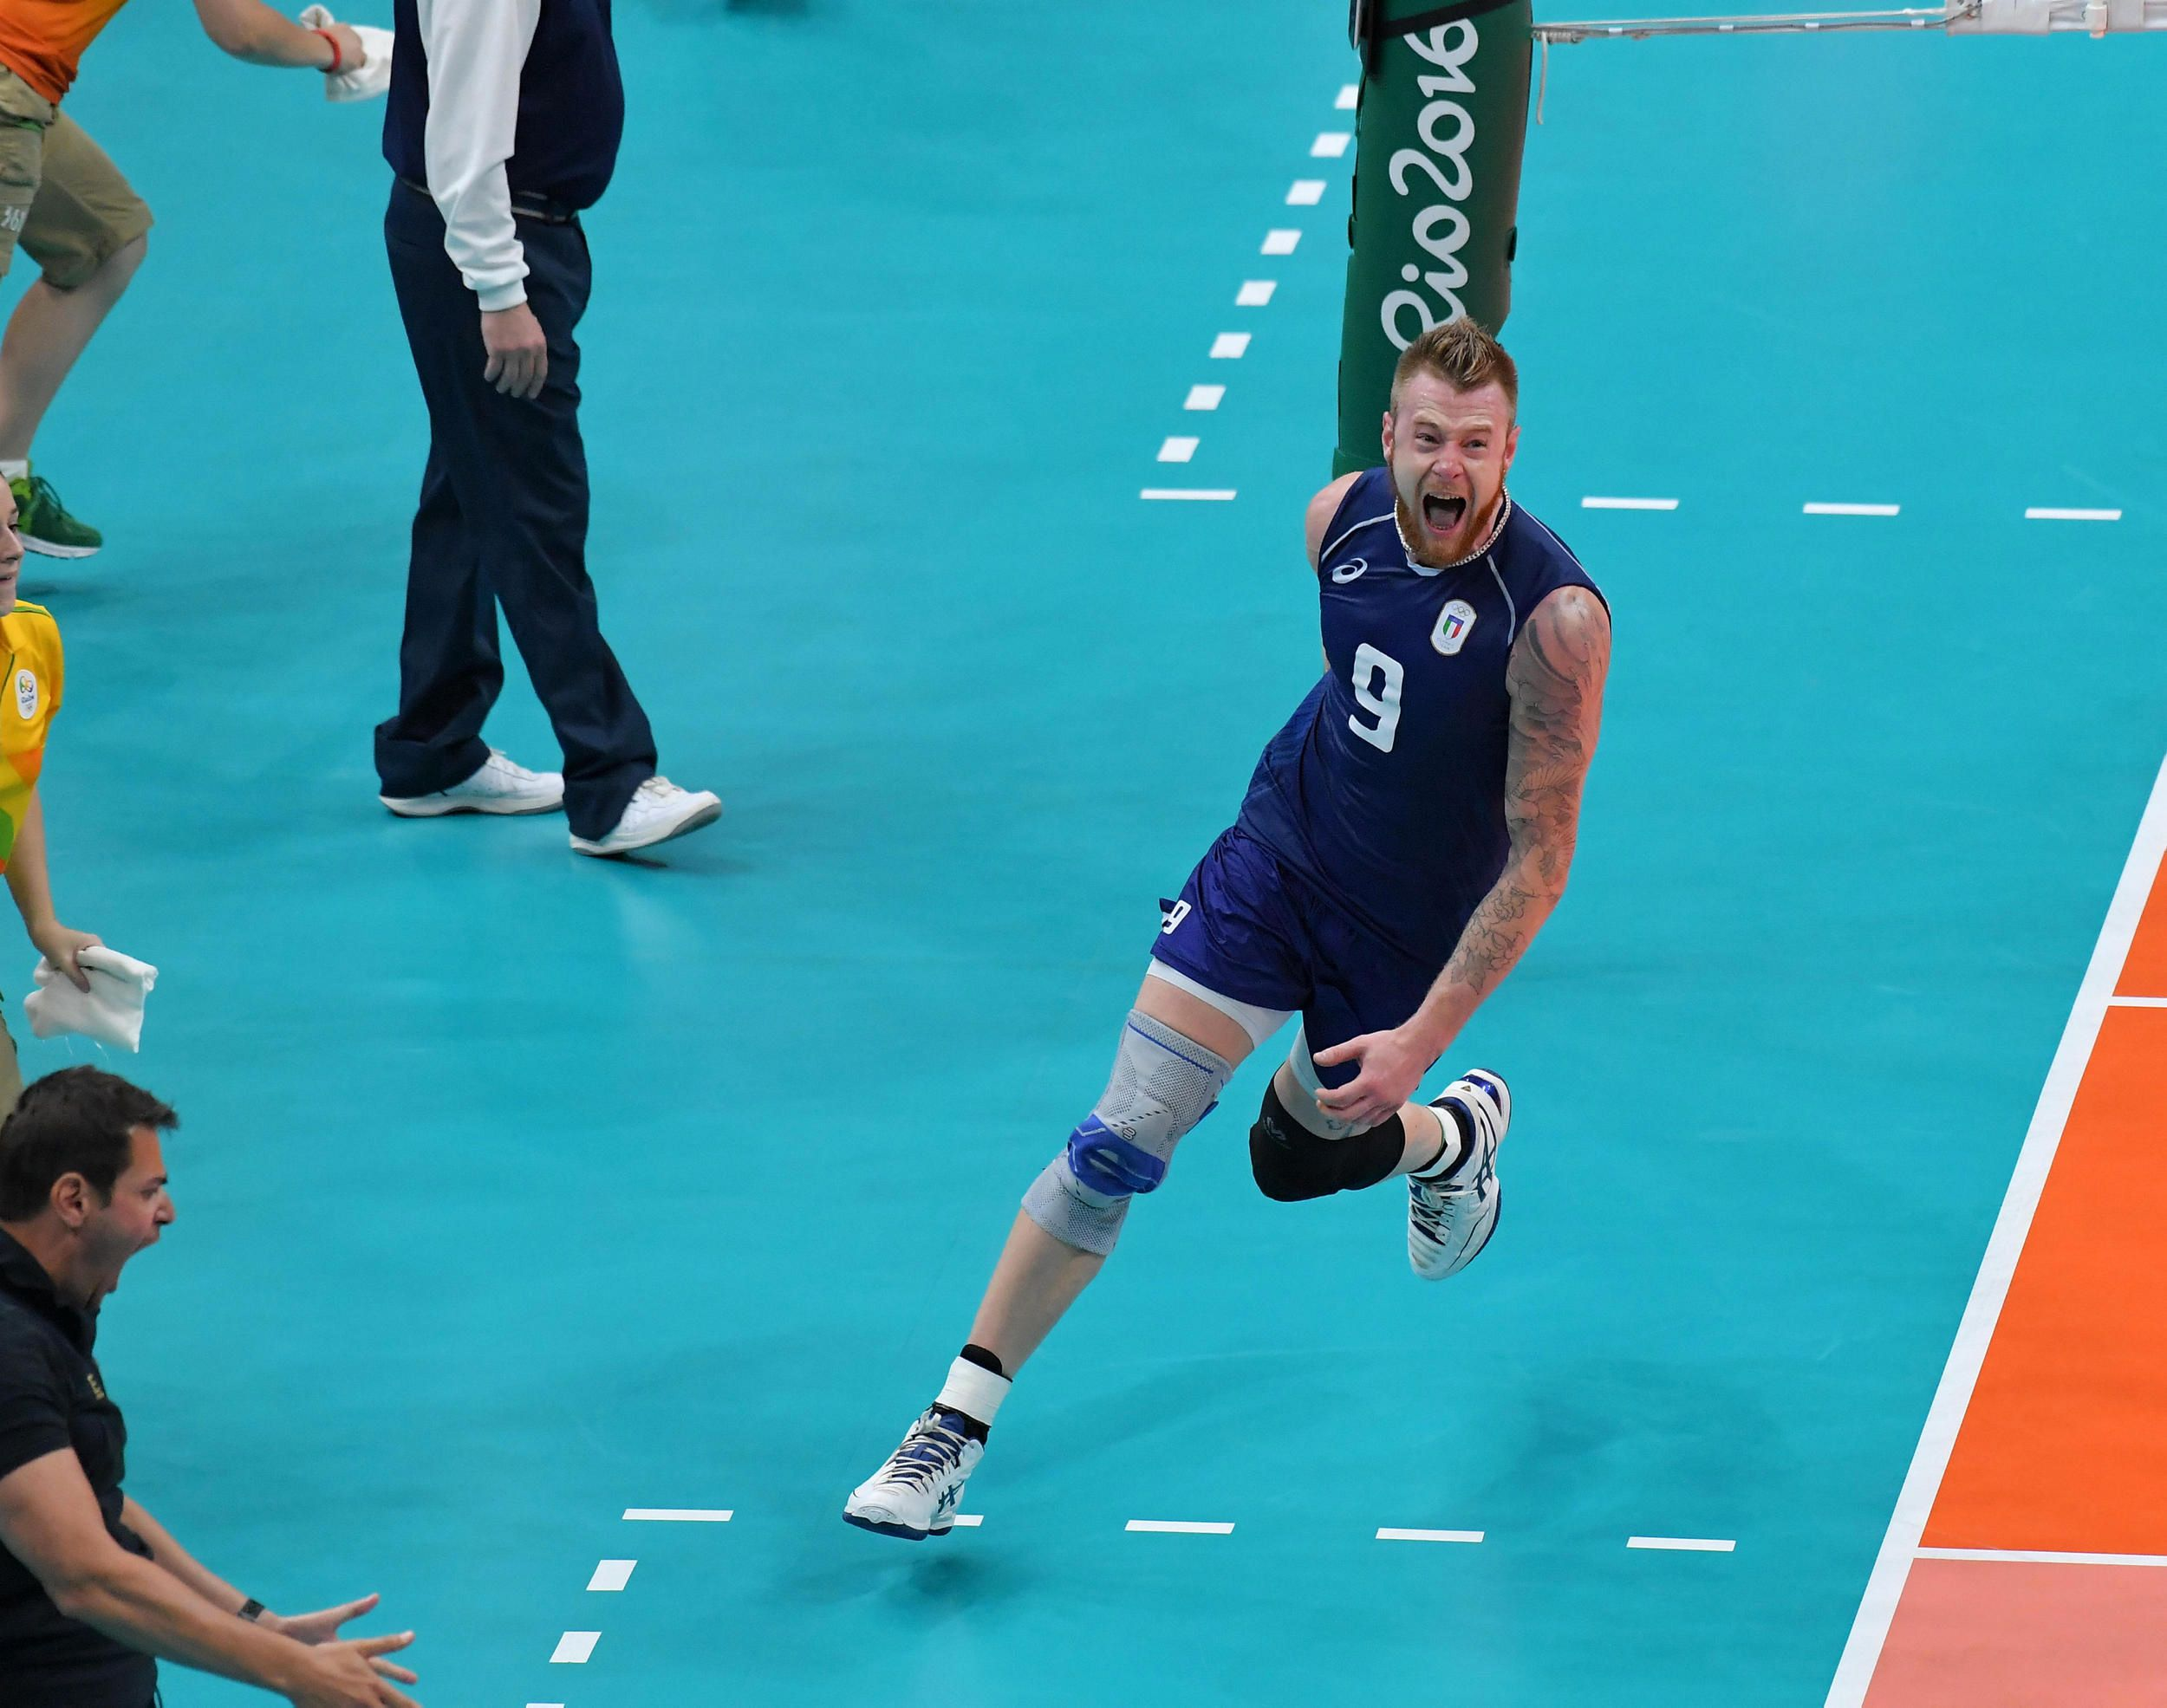 Ivan Zaytsev Celebrates A Point Against Usa In 2020 Volleyball Sports Athlete